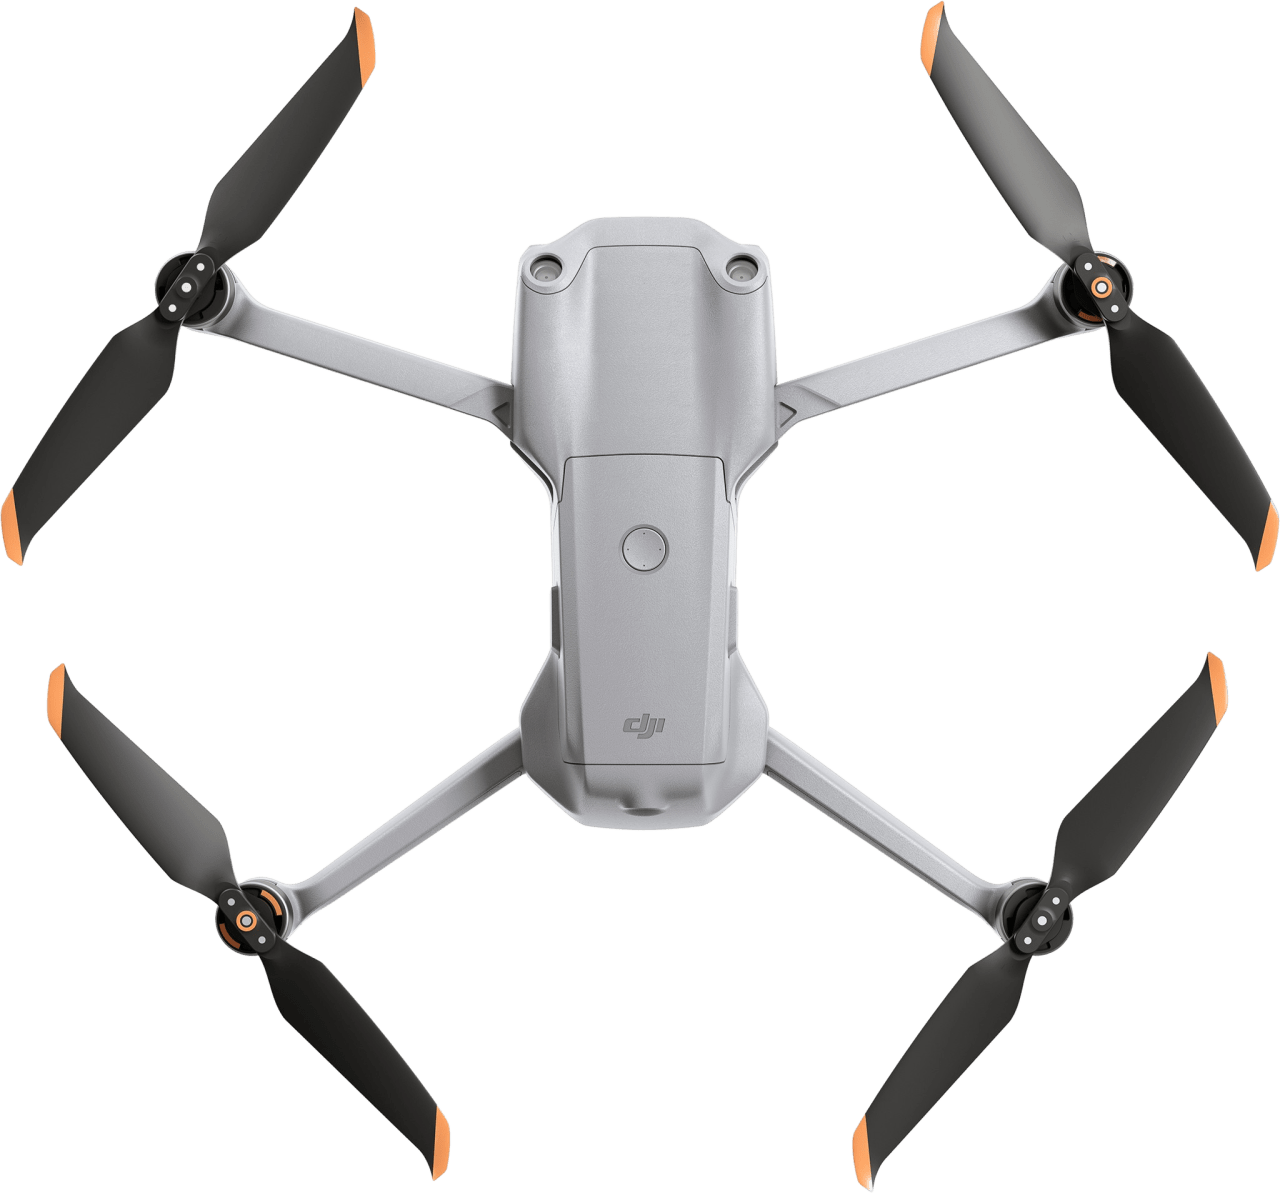 Grau DJI Air 2S Fly More Combo Drohne.3